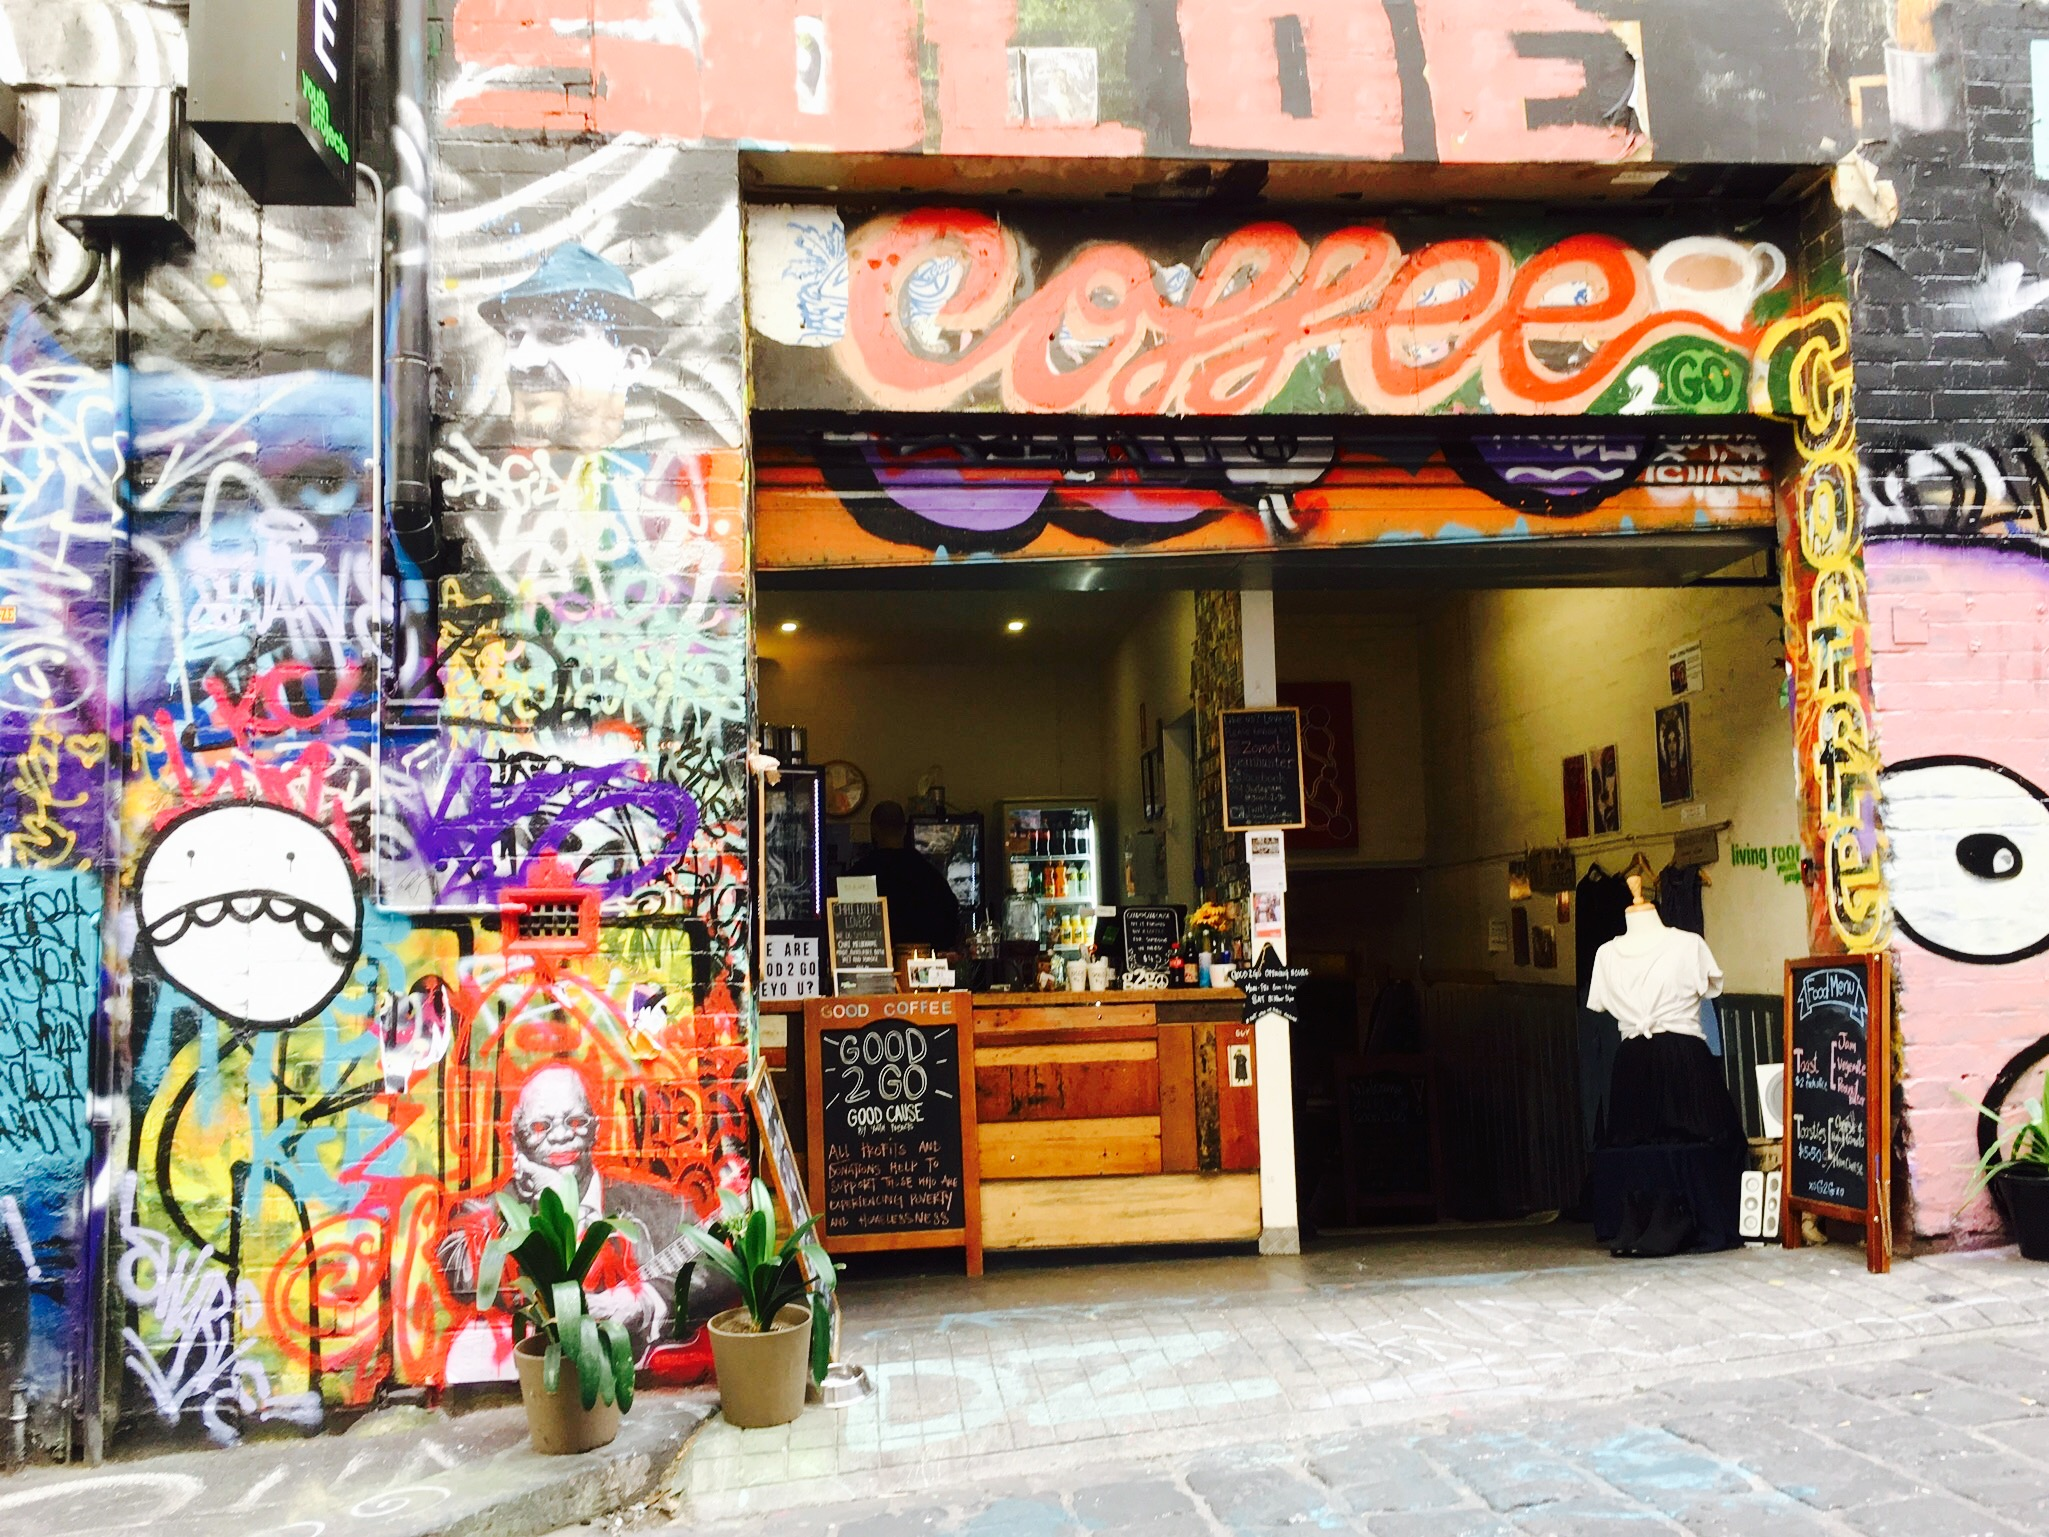 Good-2-go-cafe-coffee-shop-hosier-lane-melbourne-cafes-coffees-food-alley-charity-donate